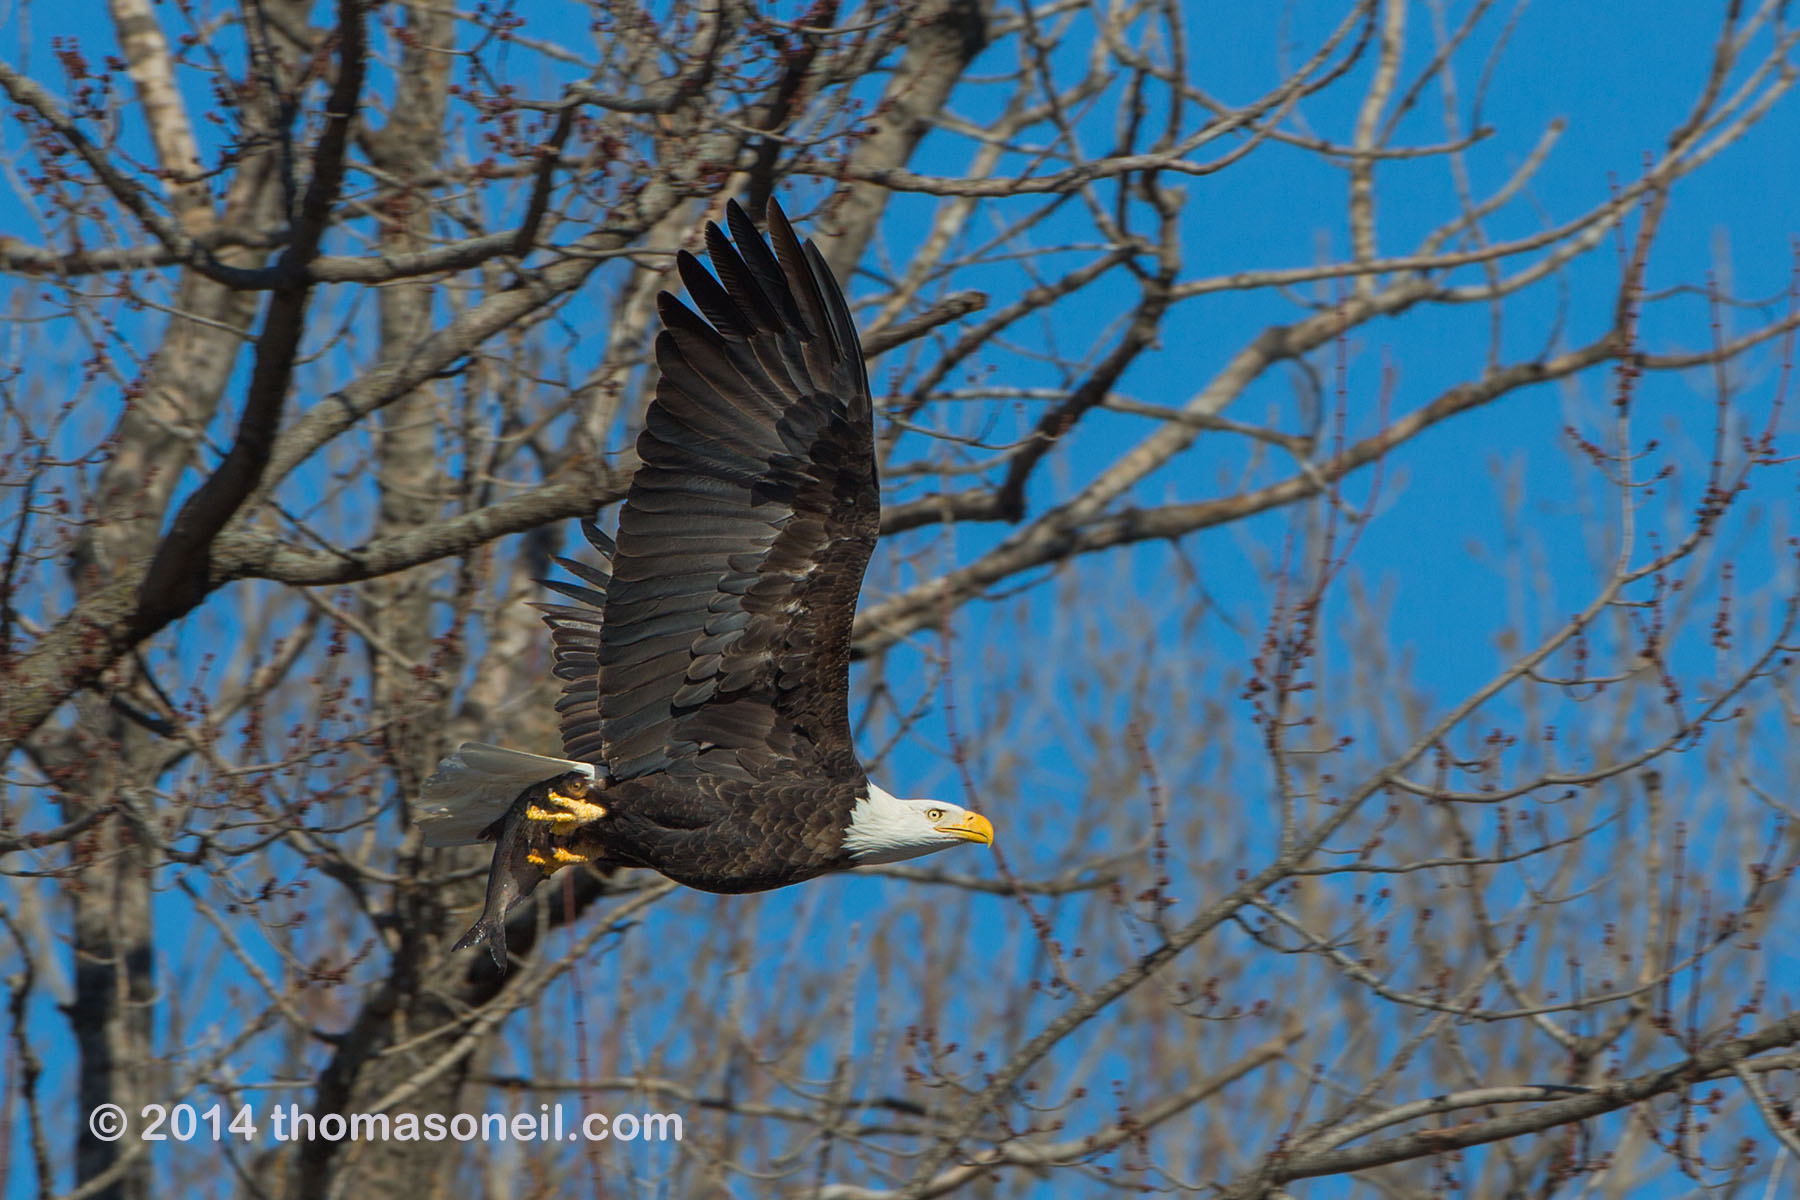 Bald eagle with fish, Lock and Dam 18 on the Mississippi River in Illinois, January 2014.  Click for next photo.